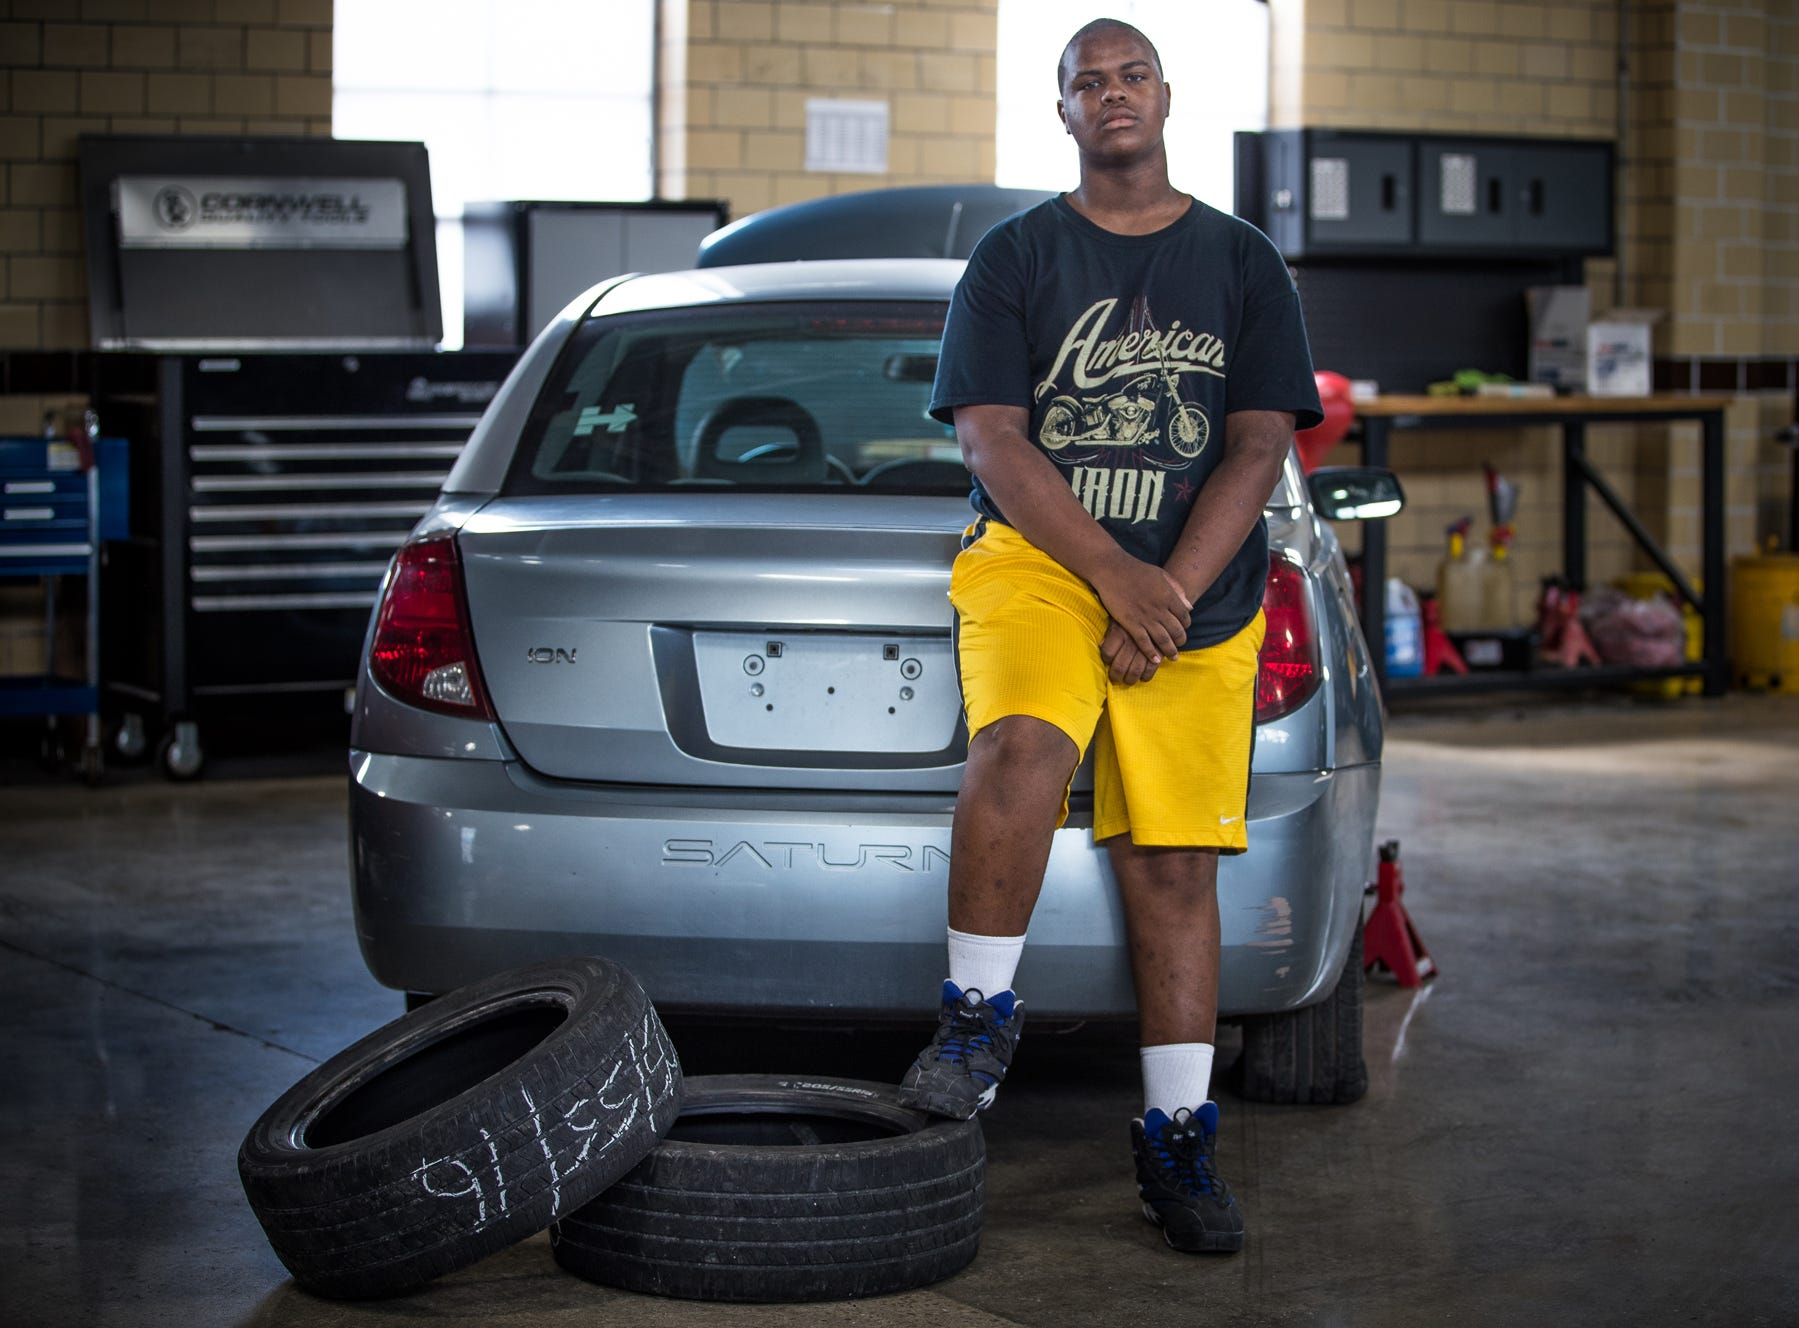 Deanthony Patterson, 16, poses for a portrait inside City Life Wheels, an auto repair shop on Indianapolis' east side, on Tuesday, July 3, 2018. City Life Wheels is a program of Central Indiana Youth for Christ where Marion County teens, ages 14 to 19, can learn basic auto mechanics.